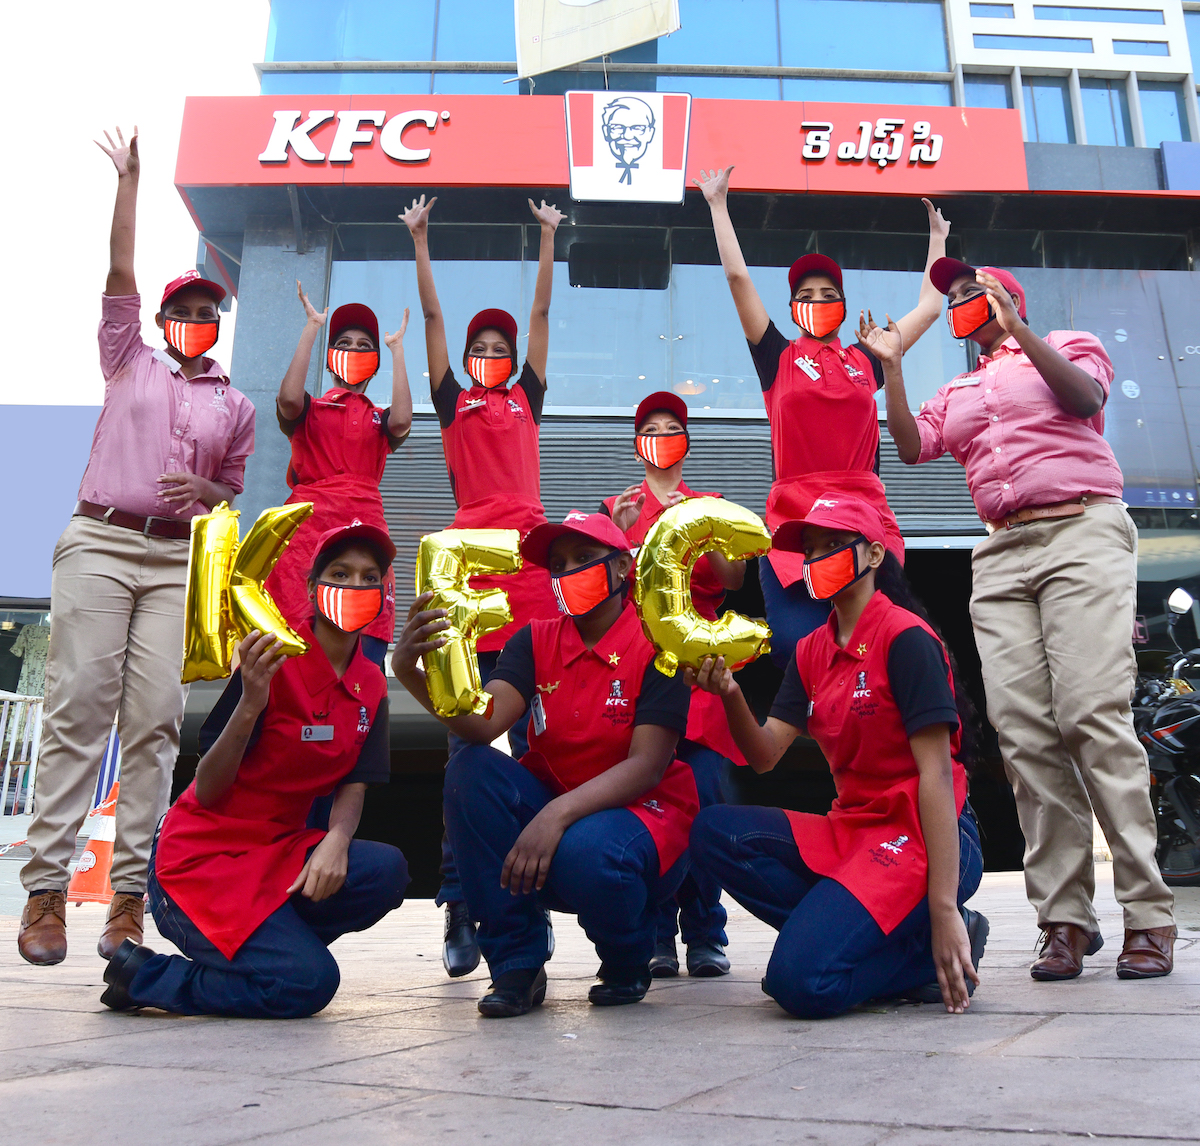 """Workers celebrate in front of newly opened KFC, holding balloons that read """"KFC"""""""